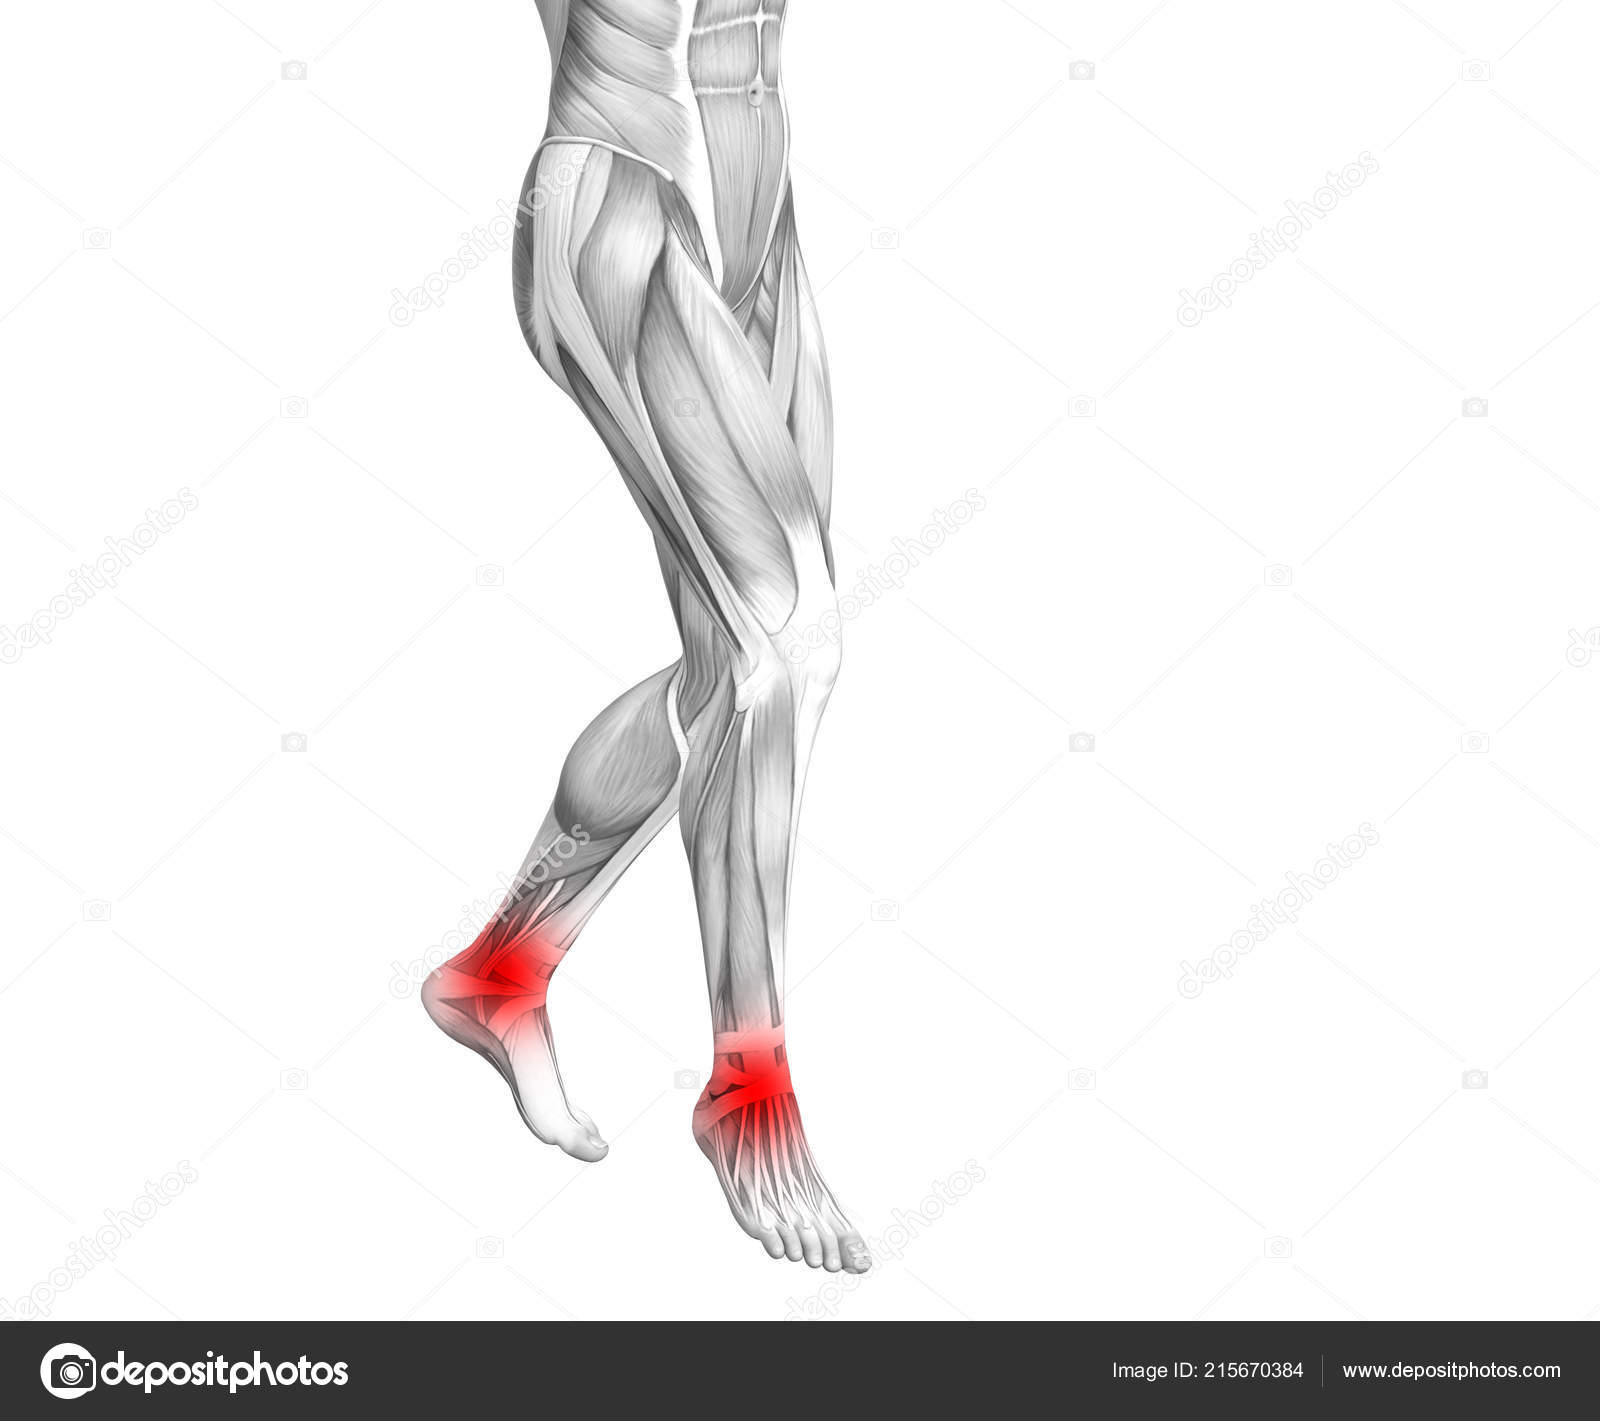 Conceptual Ankle Human Anatomy Red Hot Spot Inflammation Articular